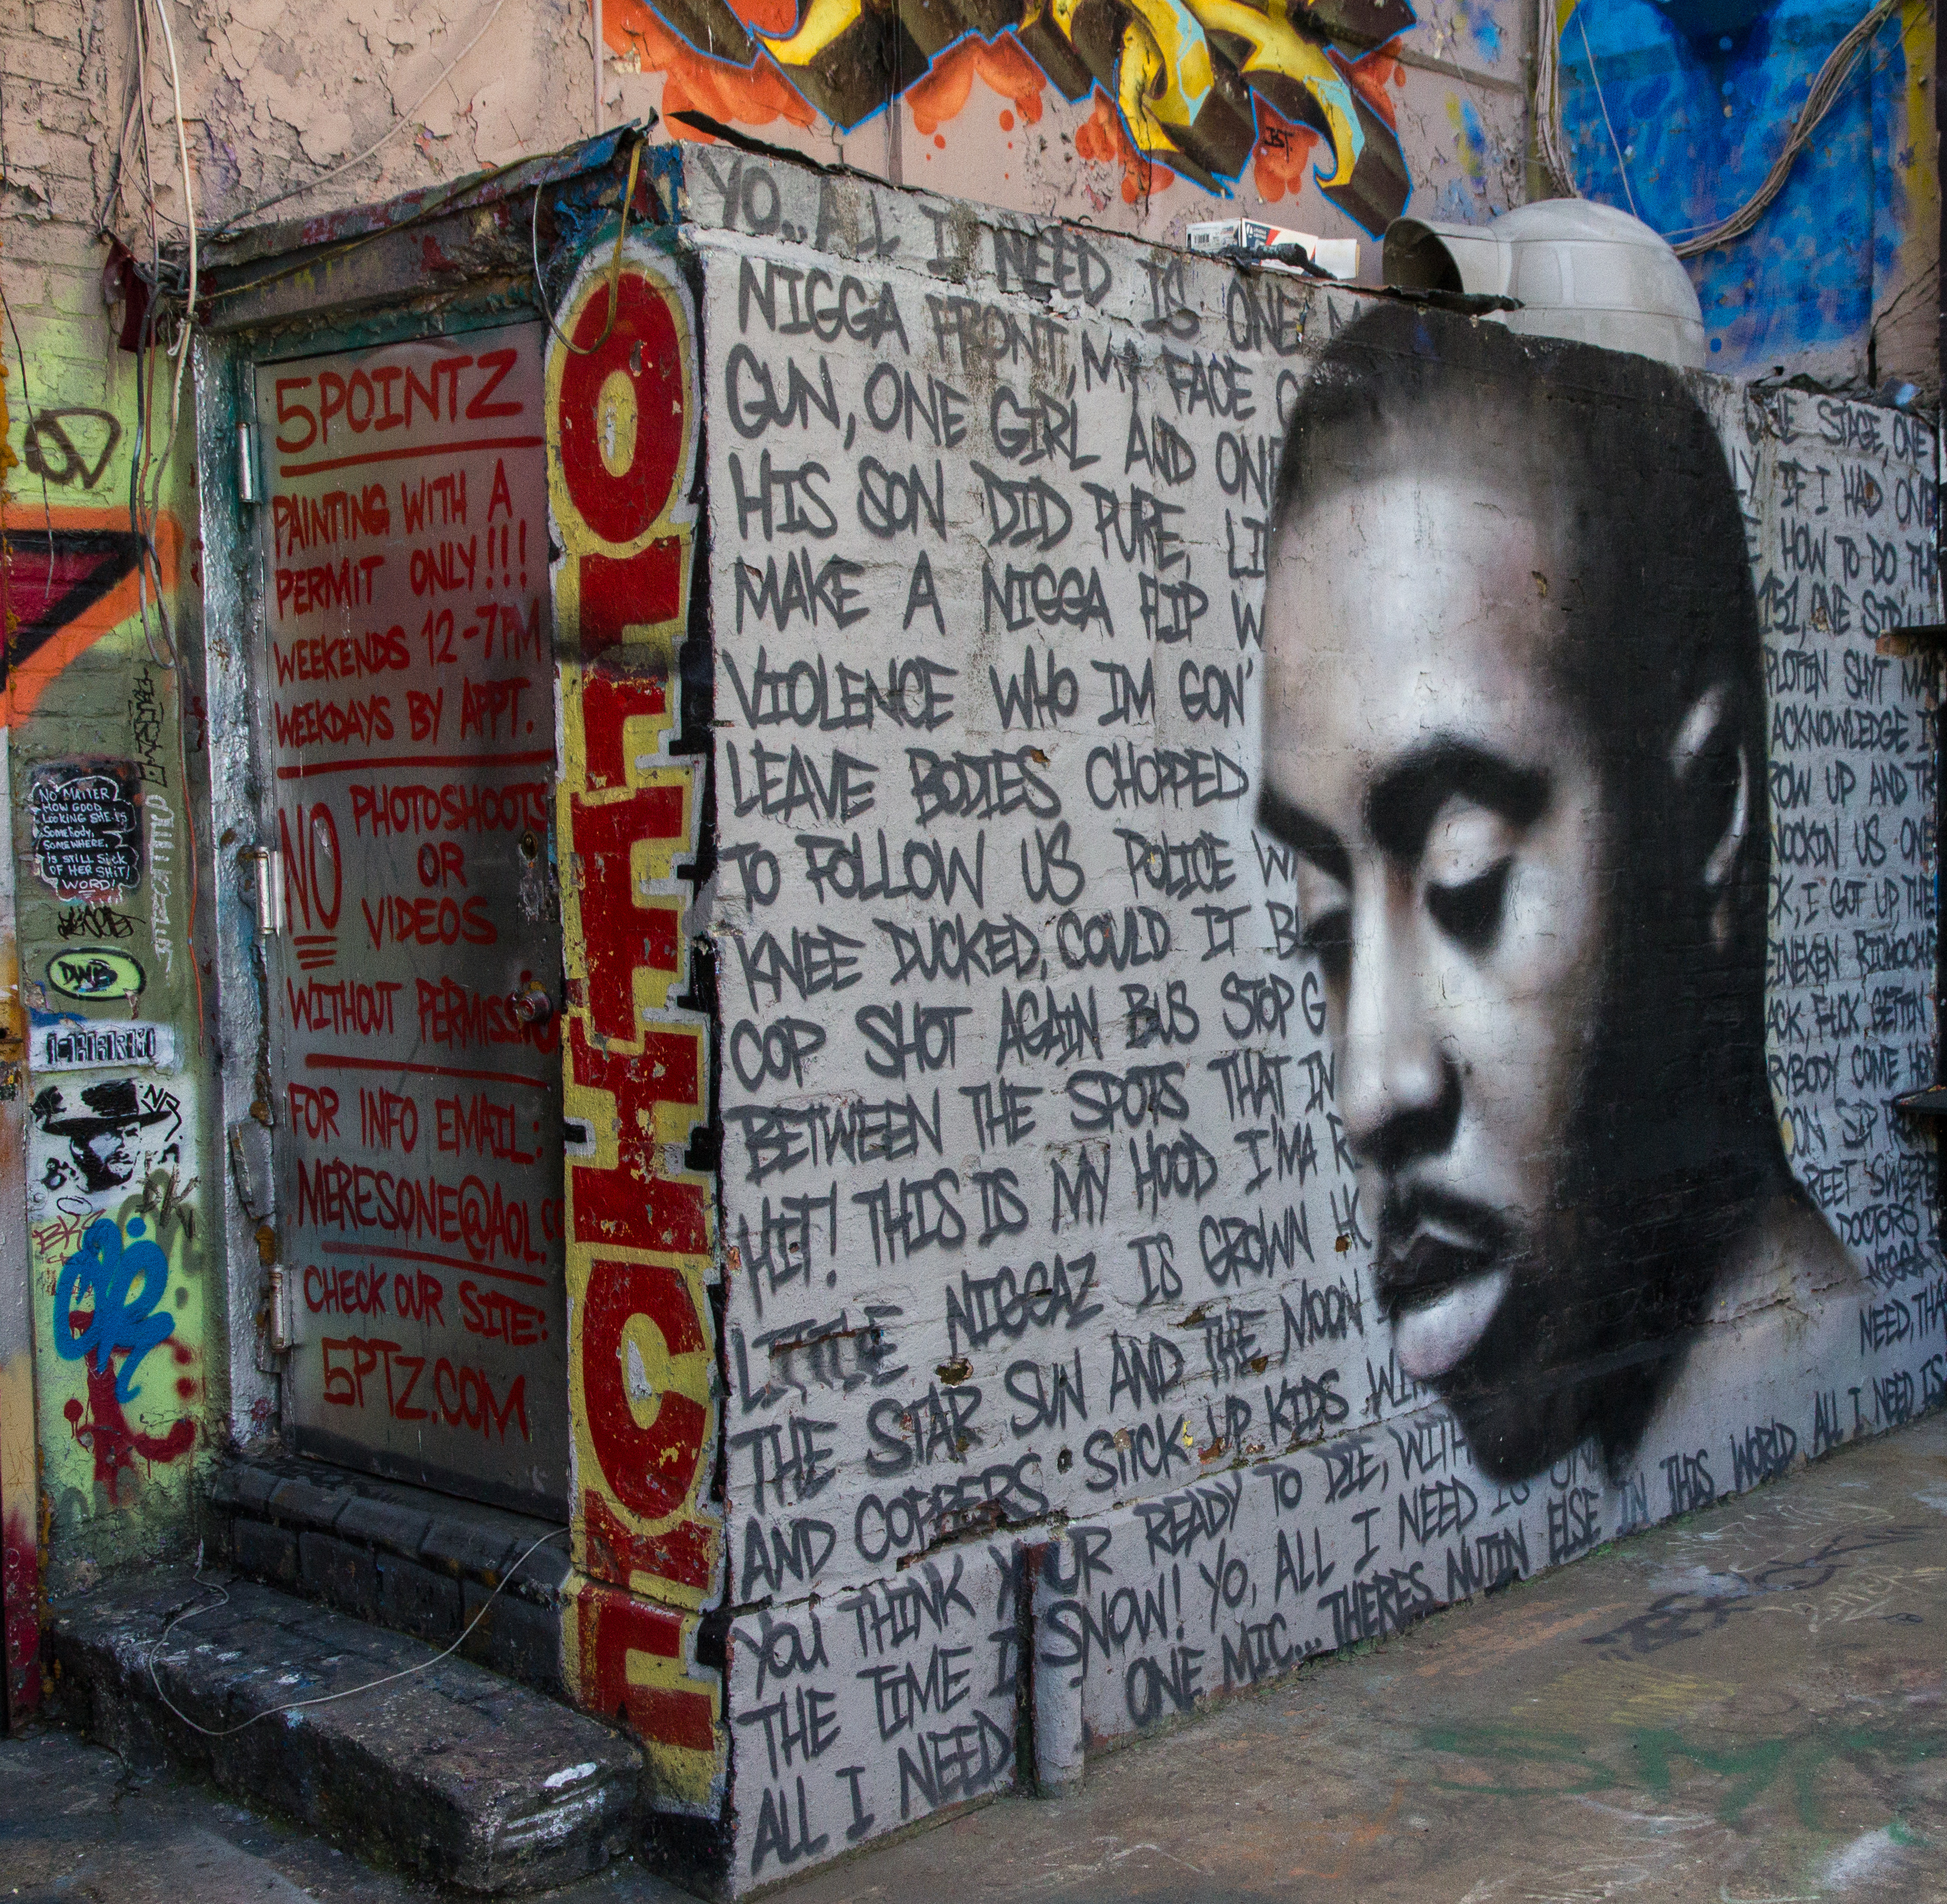 The office at 5 pointz